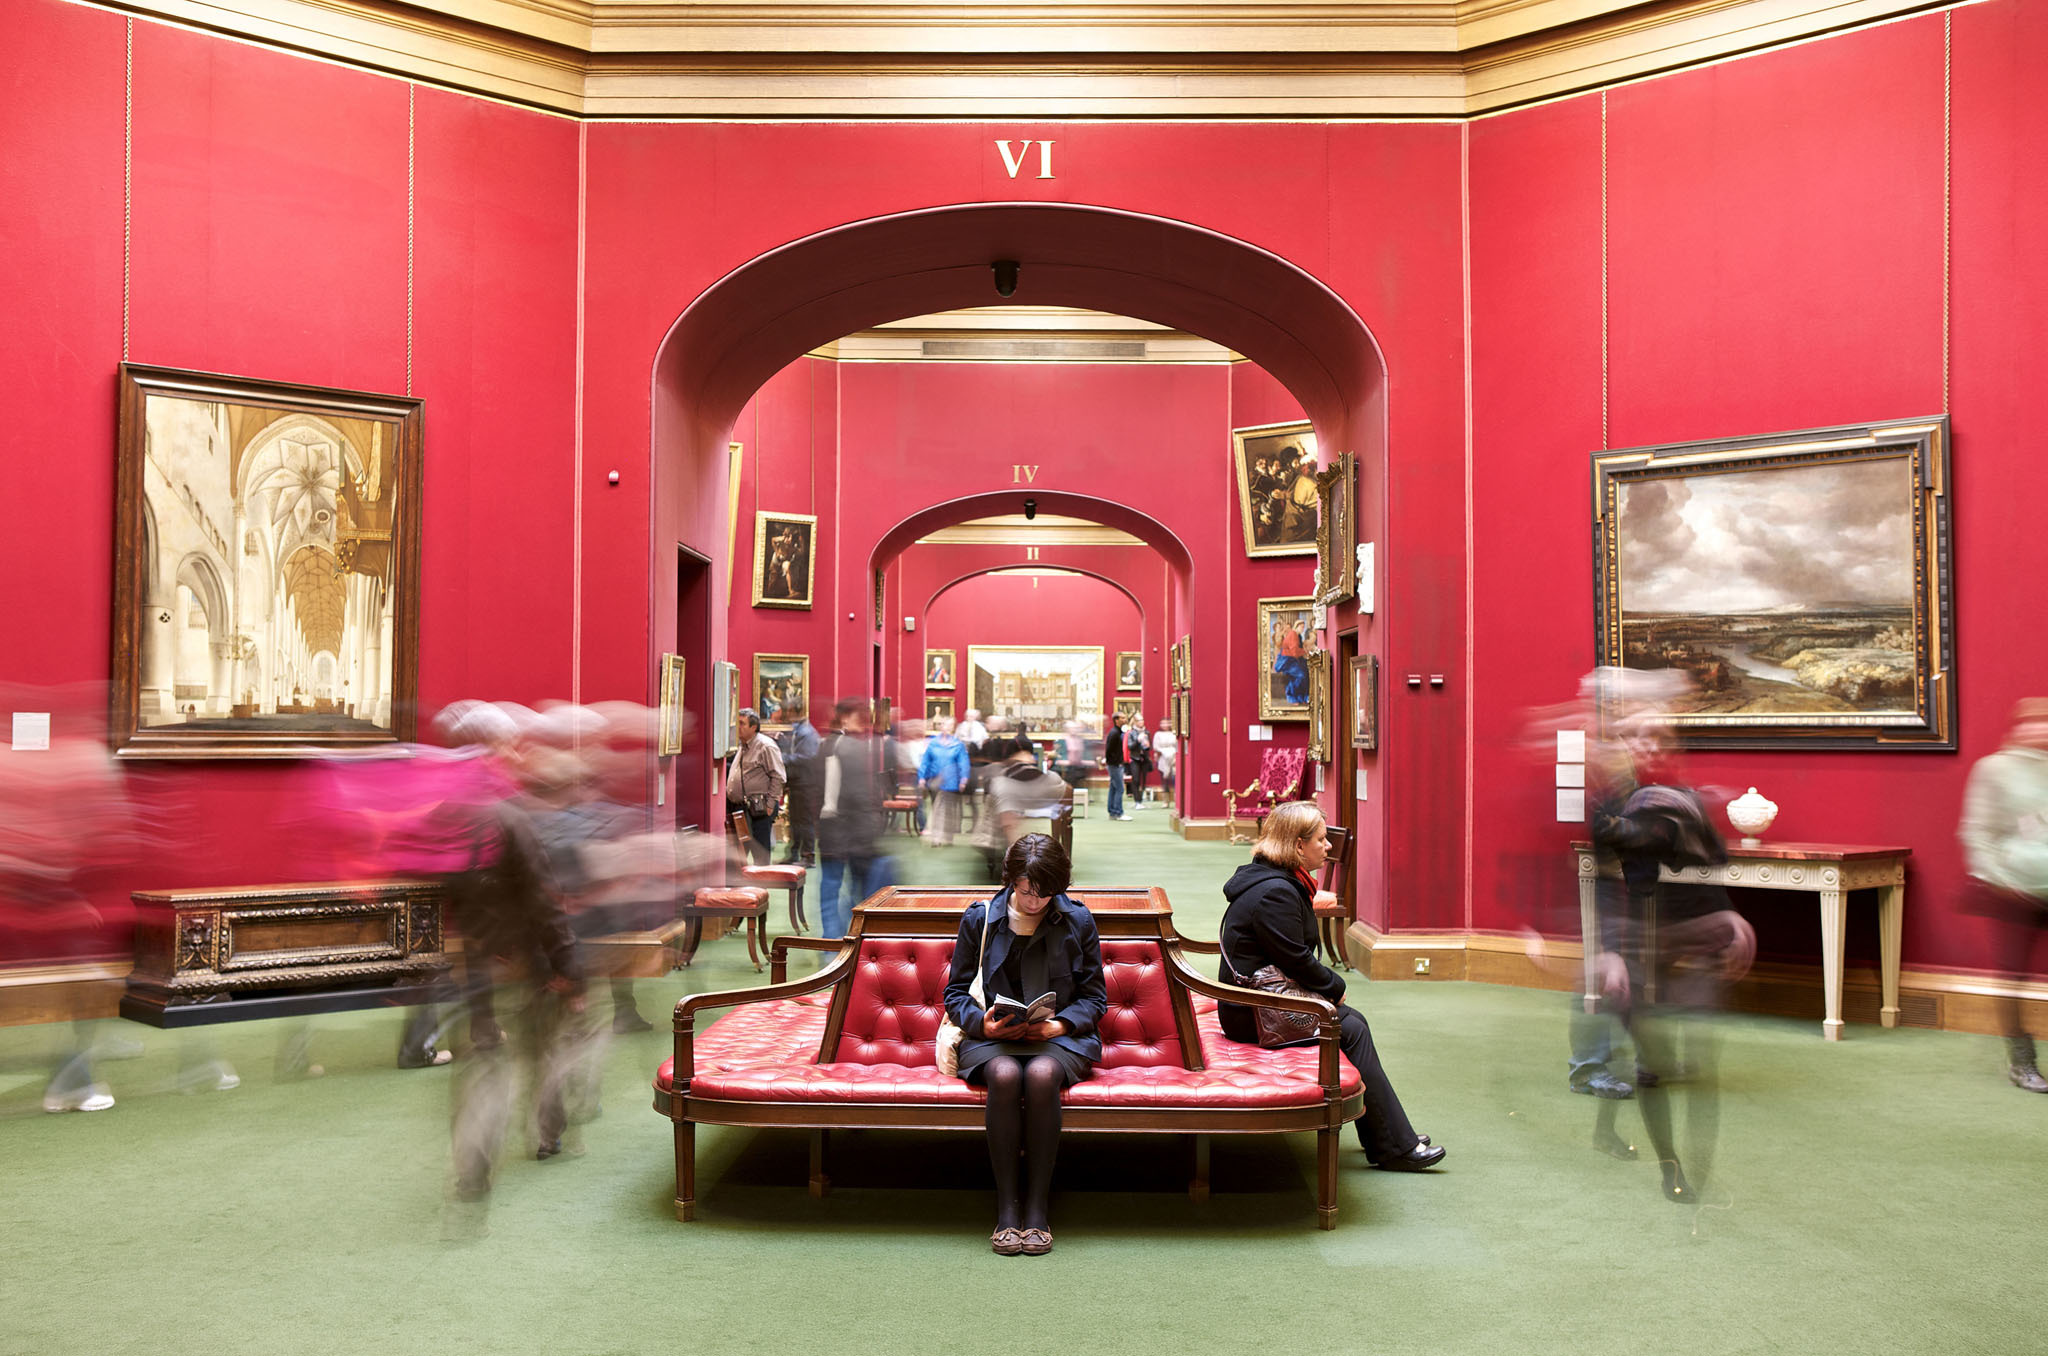 Take in some art at the Scottish National Galleries